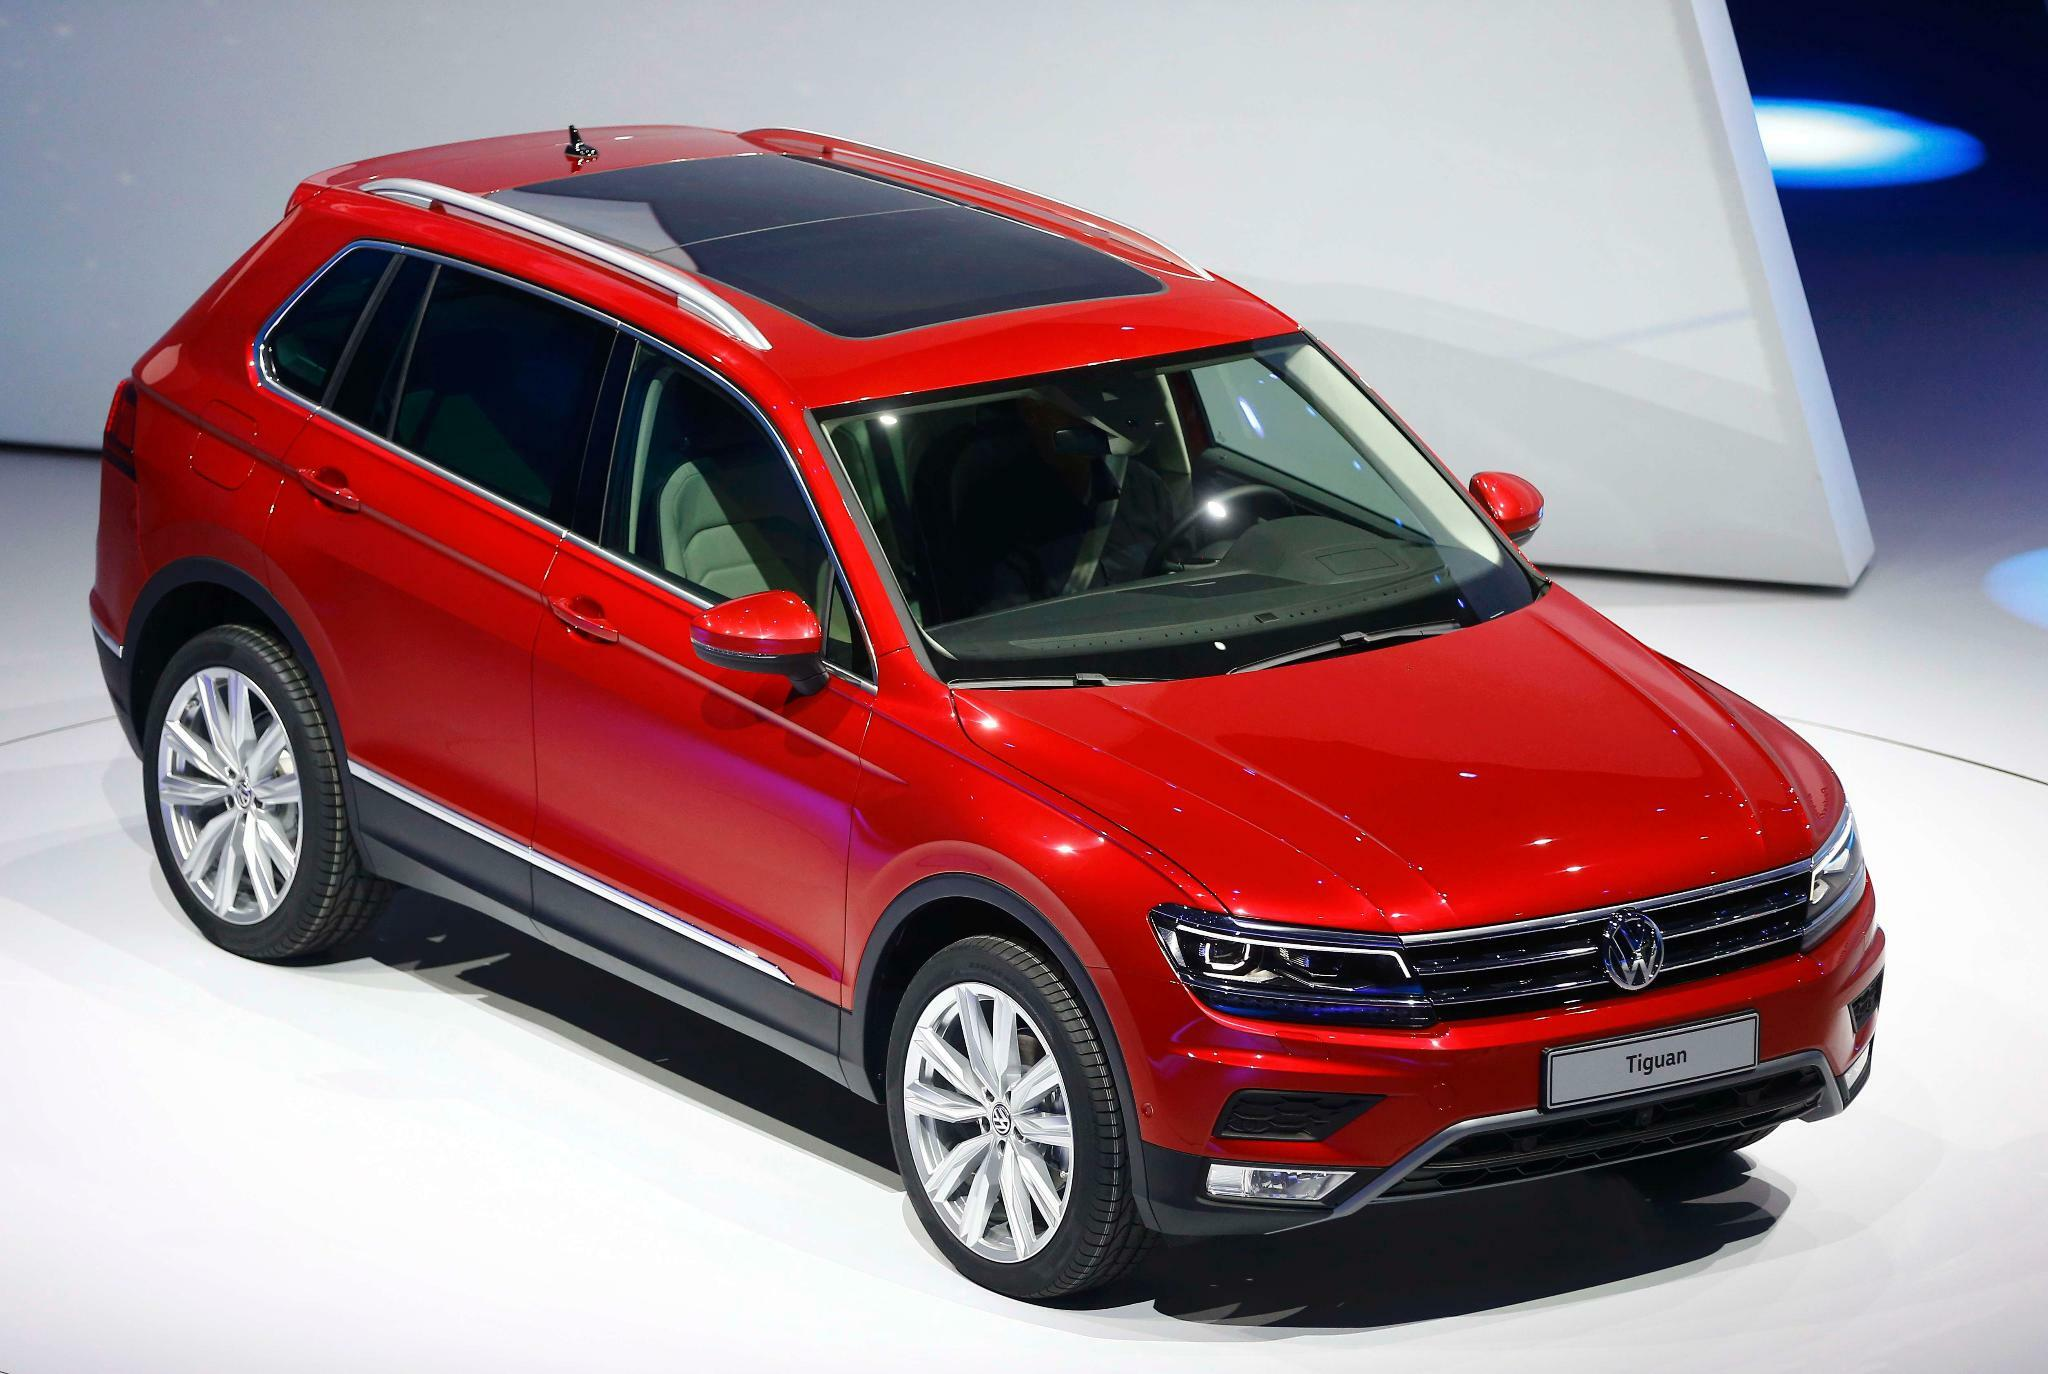 der neue vw tiguan 2015 kantiger und schlauer. Black Bedroom Furniture Sets. Home Design Ideas